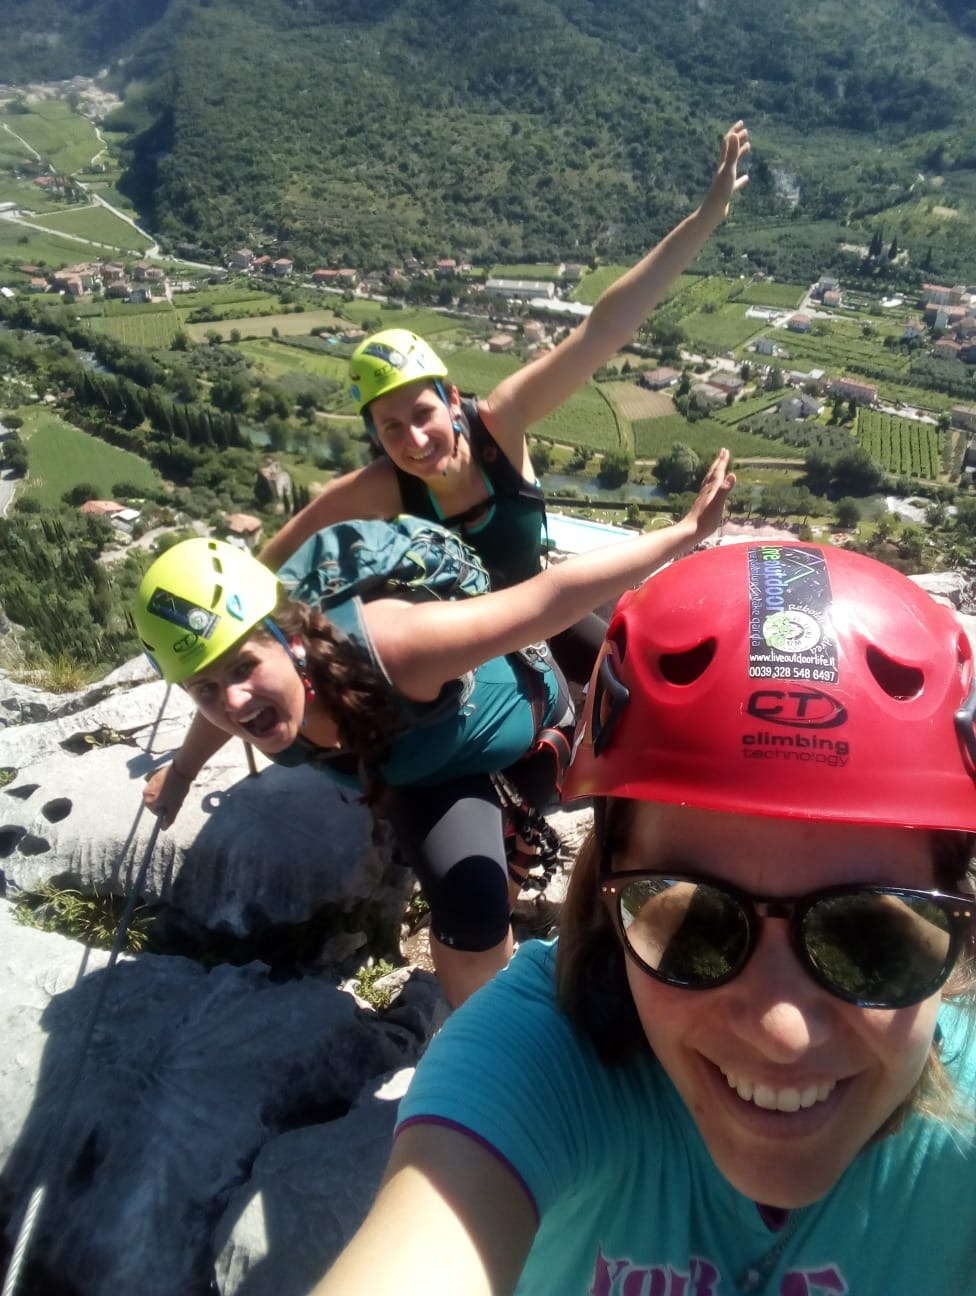 via Ferrata Colodri with funny Austrian nurses 👩🏼‍⚕️🧗🏼‍♀️